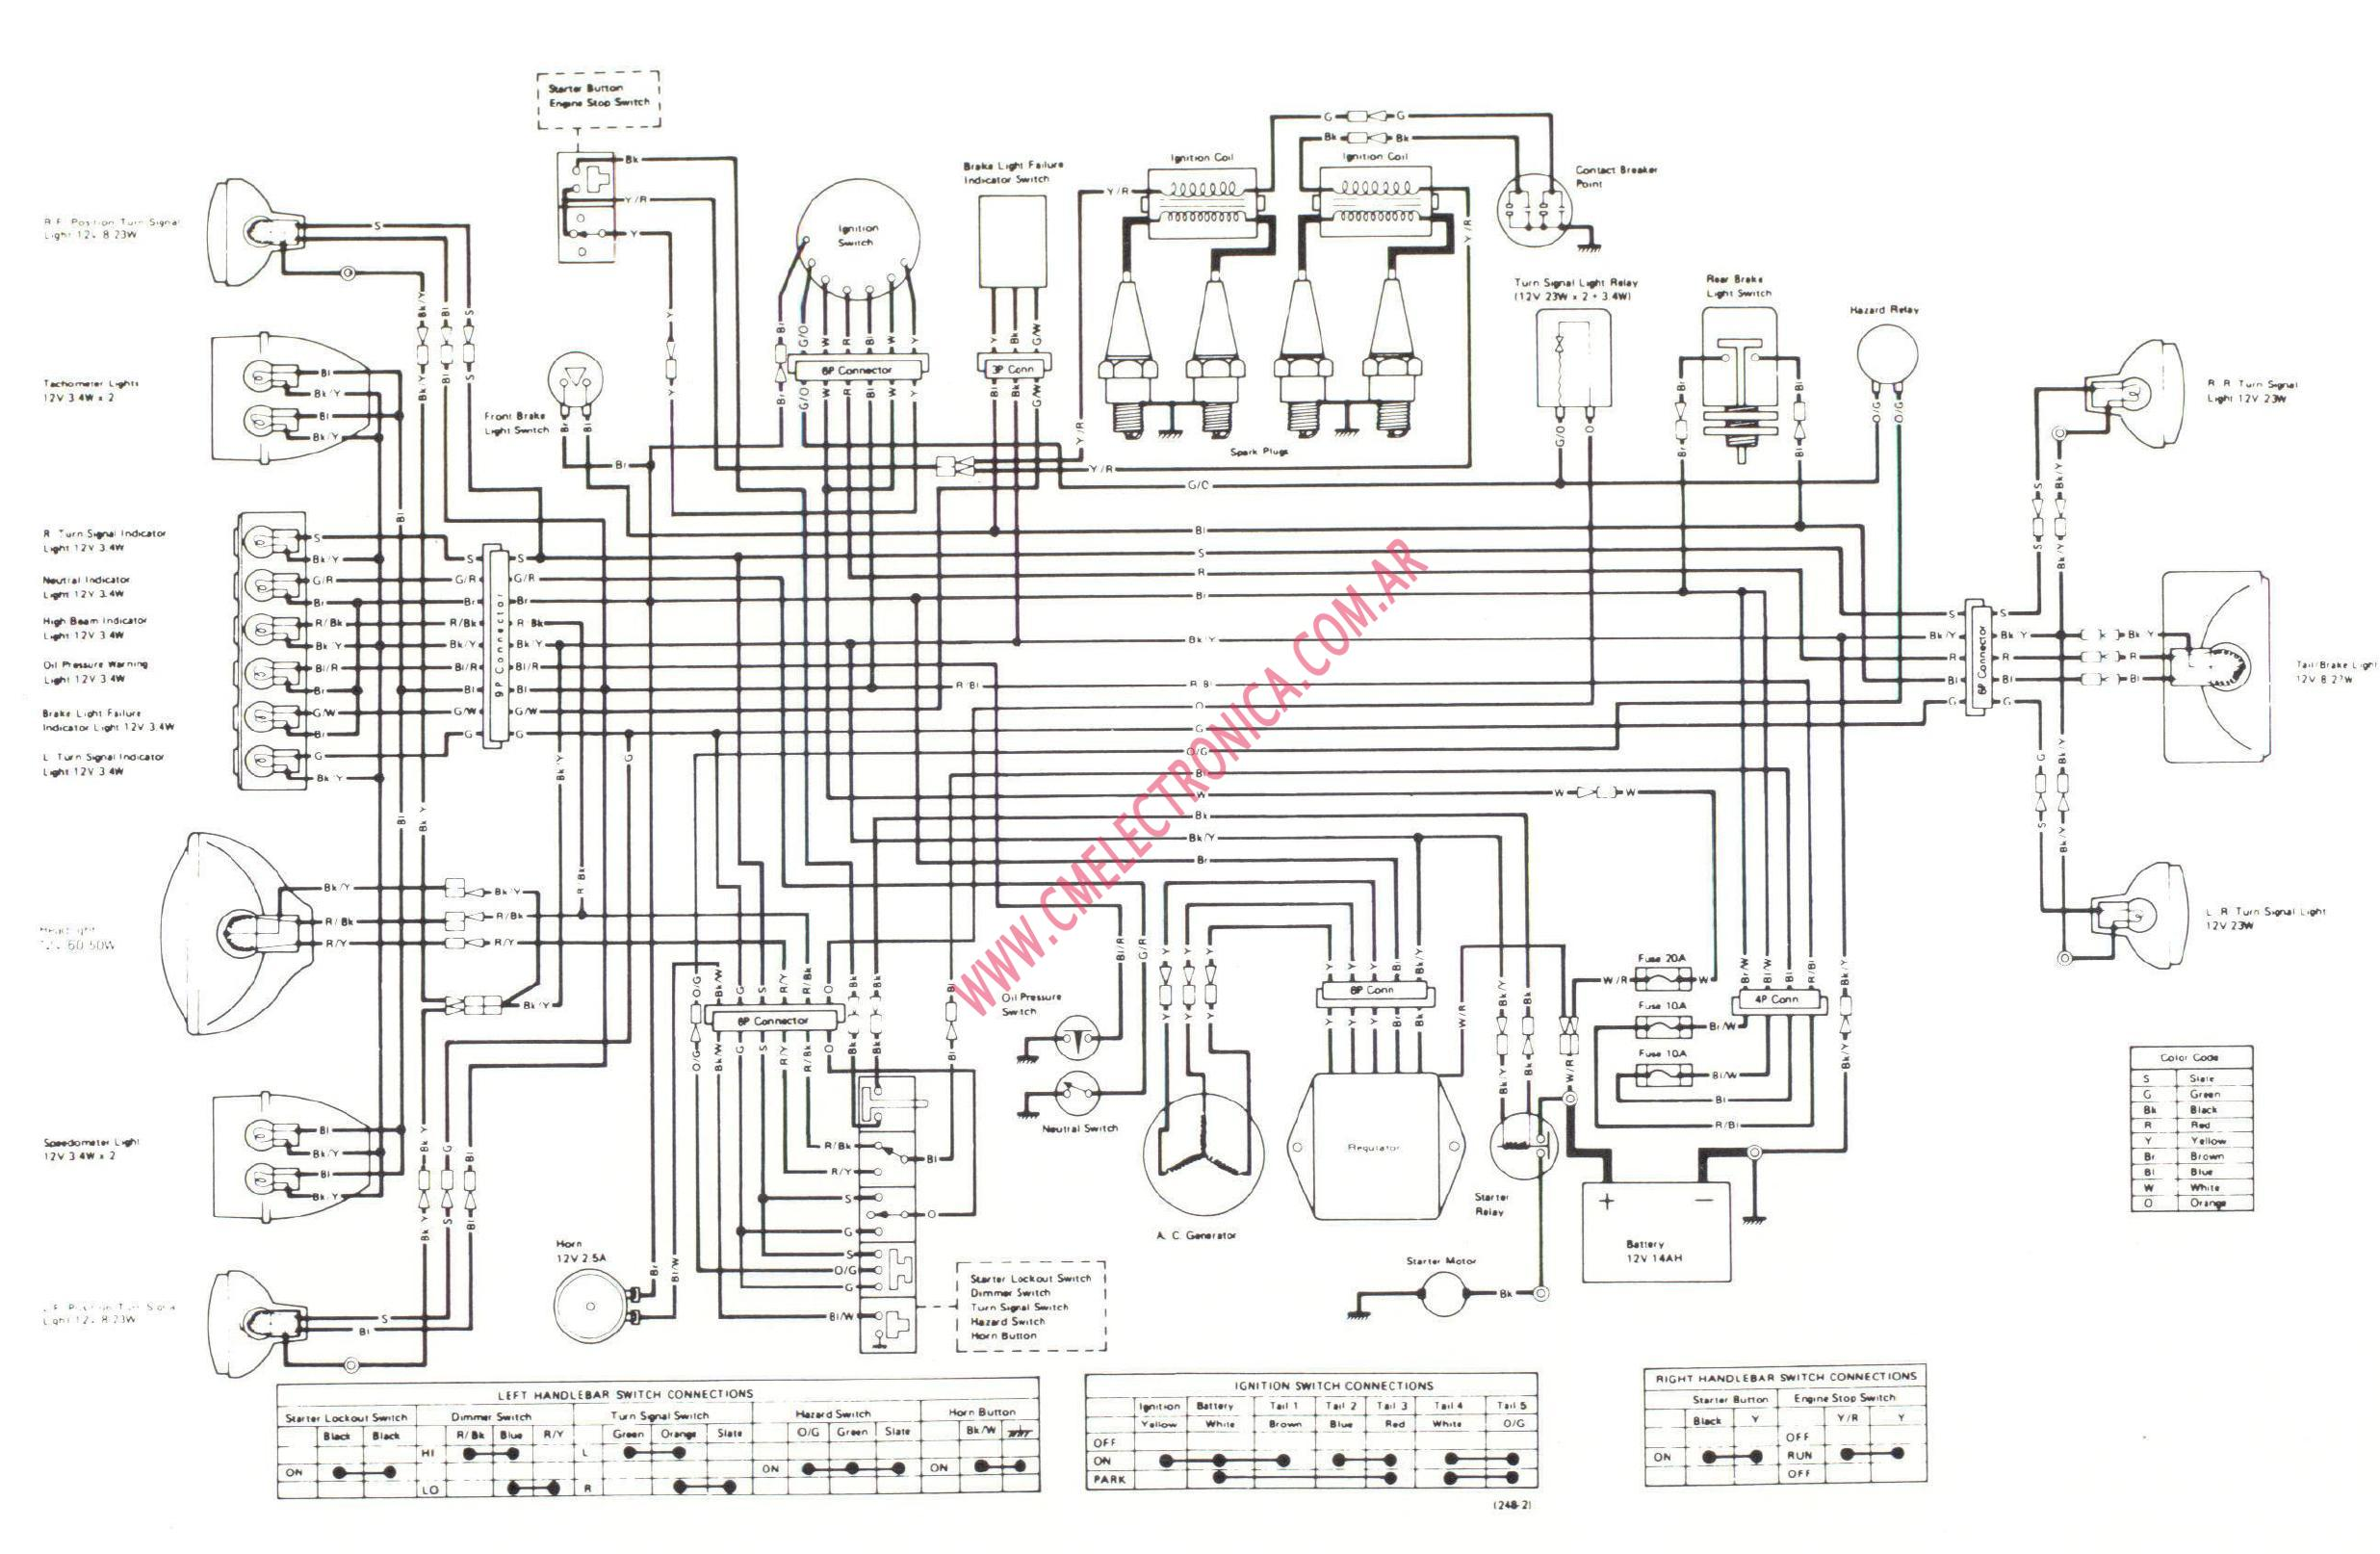 Kawasaki S2a Wiring Diagram - My Wiring Diagram on honda motorcycle repair diagrams, electrical diagrams, pinout diagrams, engine diagrams, troubleshooting diagrams, lighting diagrams, motor diagrams, switch diagrams, smart car diagrams, gmc fuse box diagrams, internet of things diagrams, hvac diagrams, sincgars radio configurations diagrams, series and parallel circuits diagrams, electronic circuit diagrams, friendship bracelet diagrams, led circuit diagrams, battery diagrams, transformer diagrams,